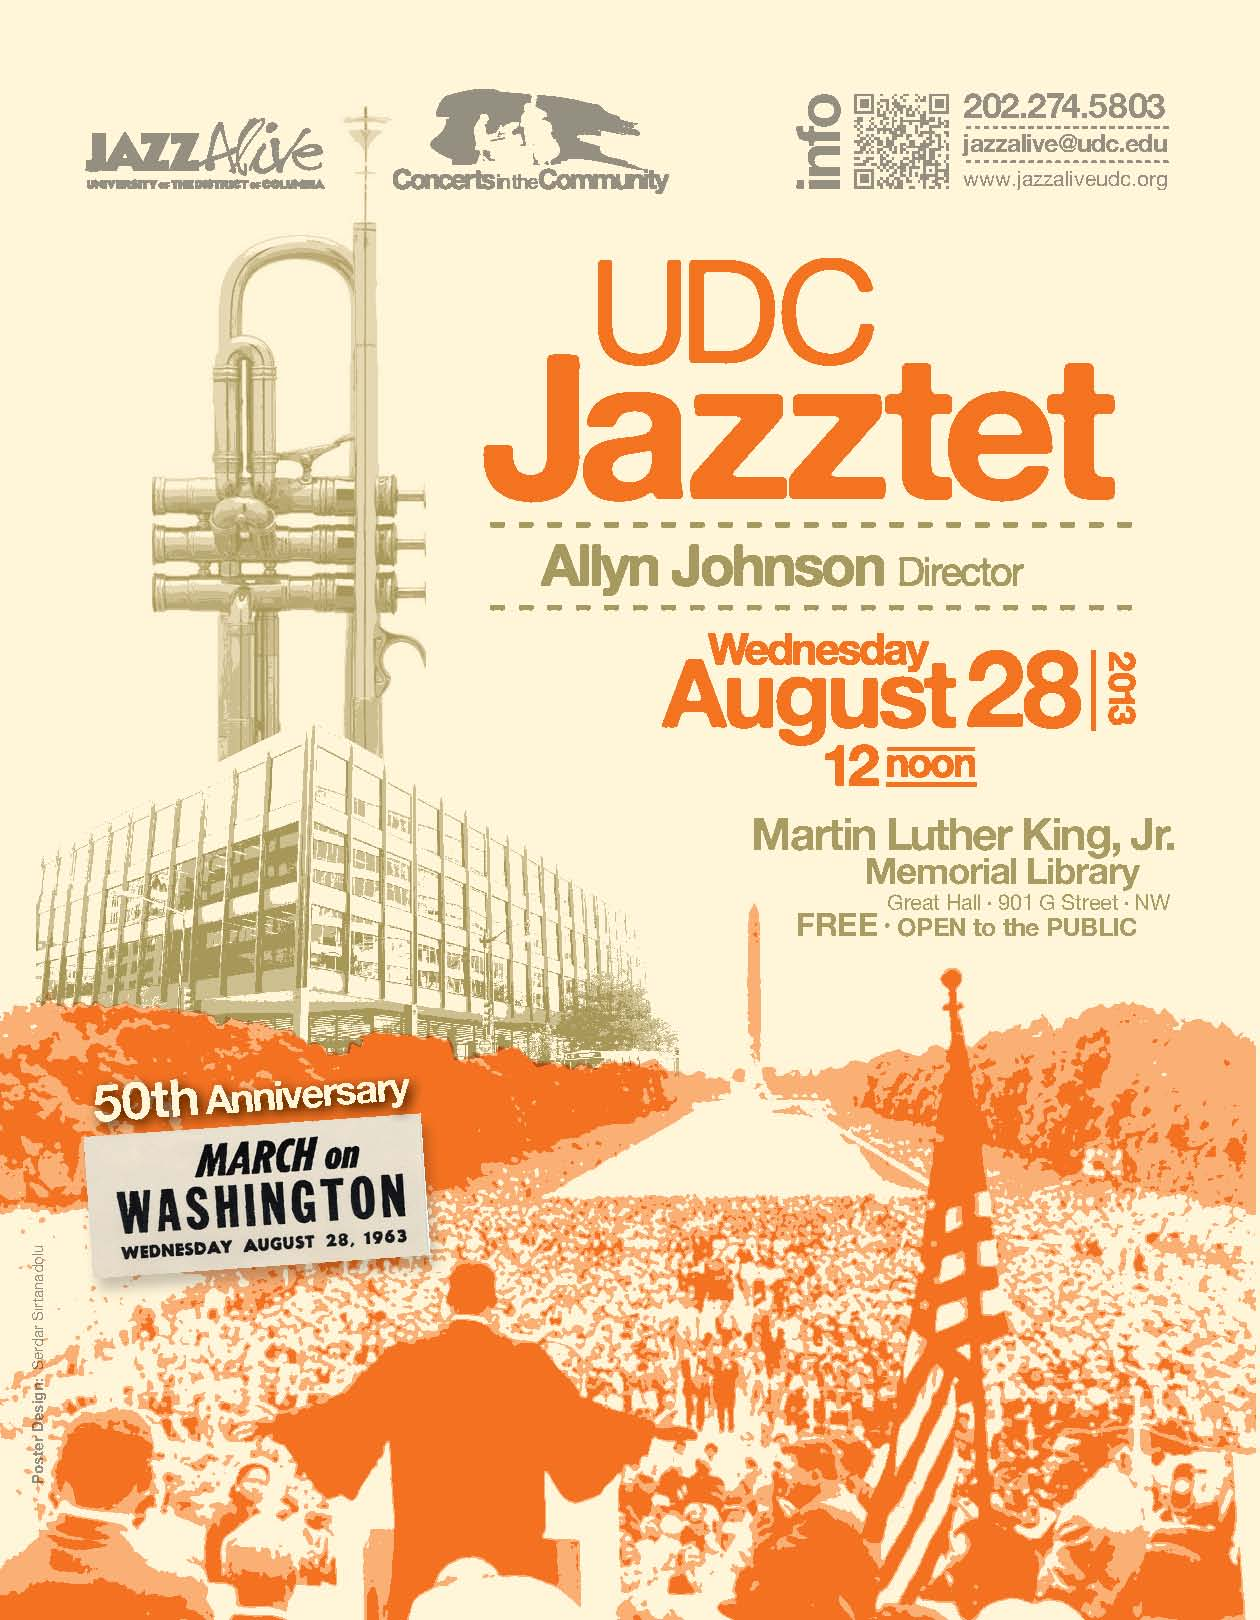 Udc jazztet, dir. allyn johnson celebrates the 50th anniversary of the march on washington at the martin luther king, jr. memorial libary on wednesday, august 28, 2013